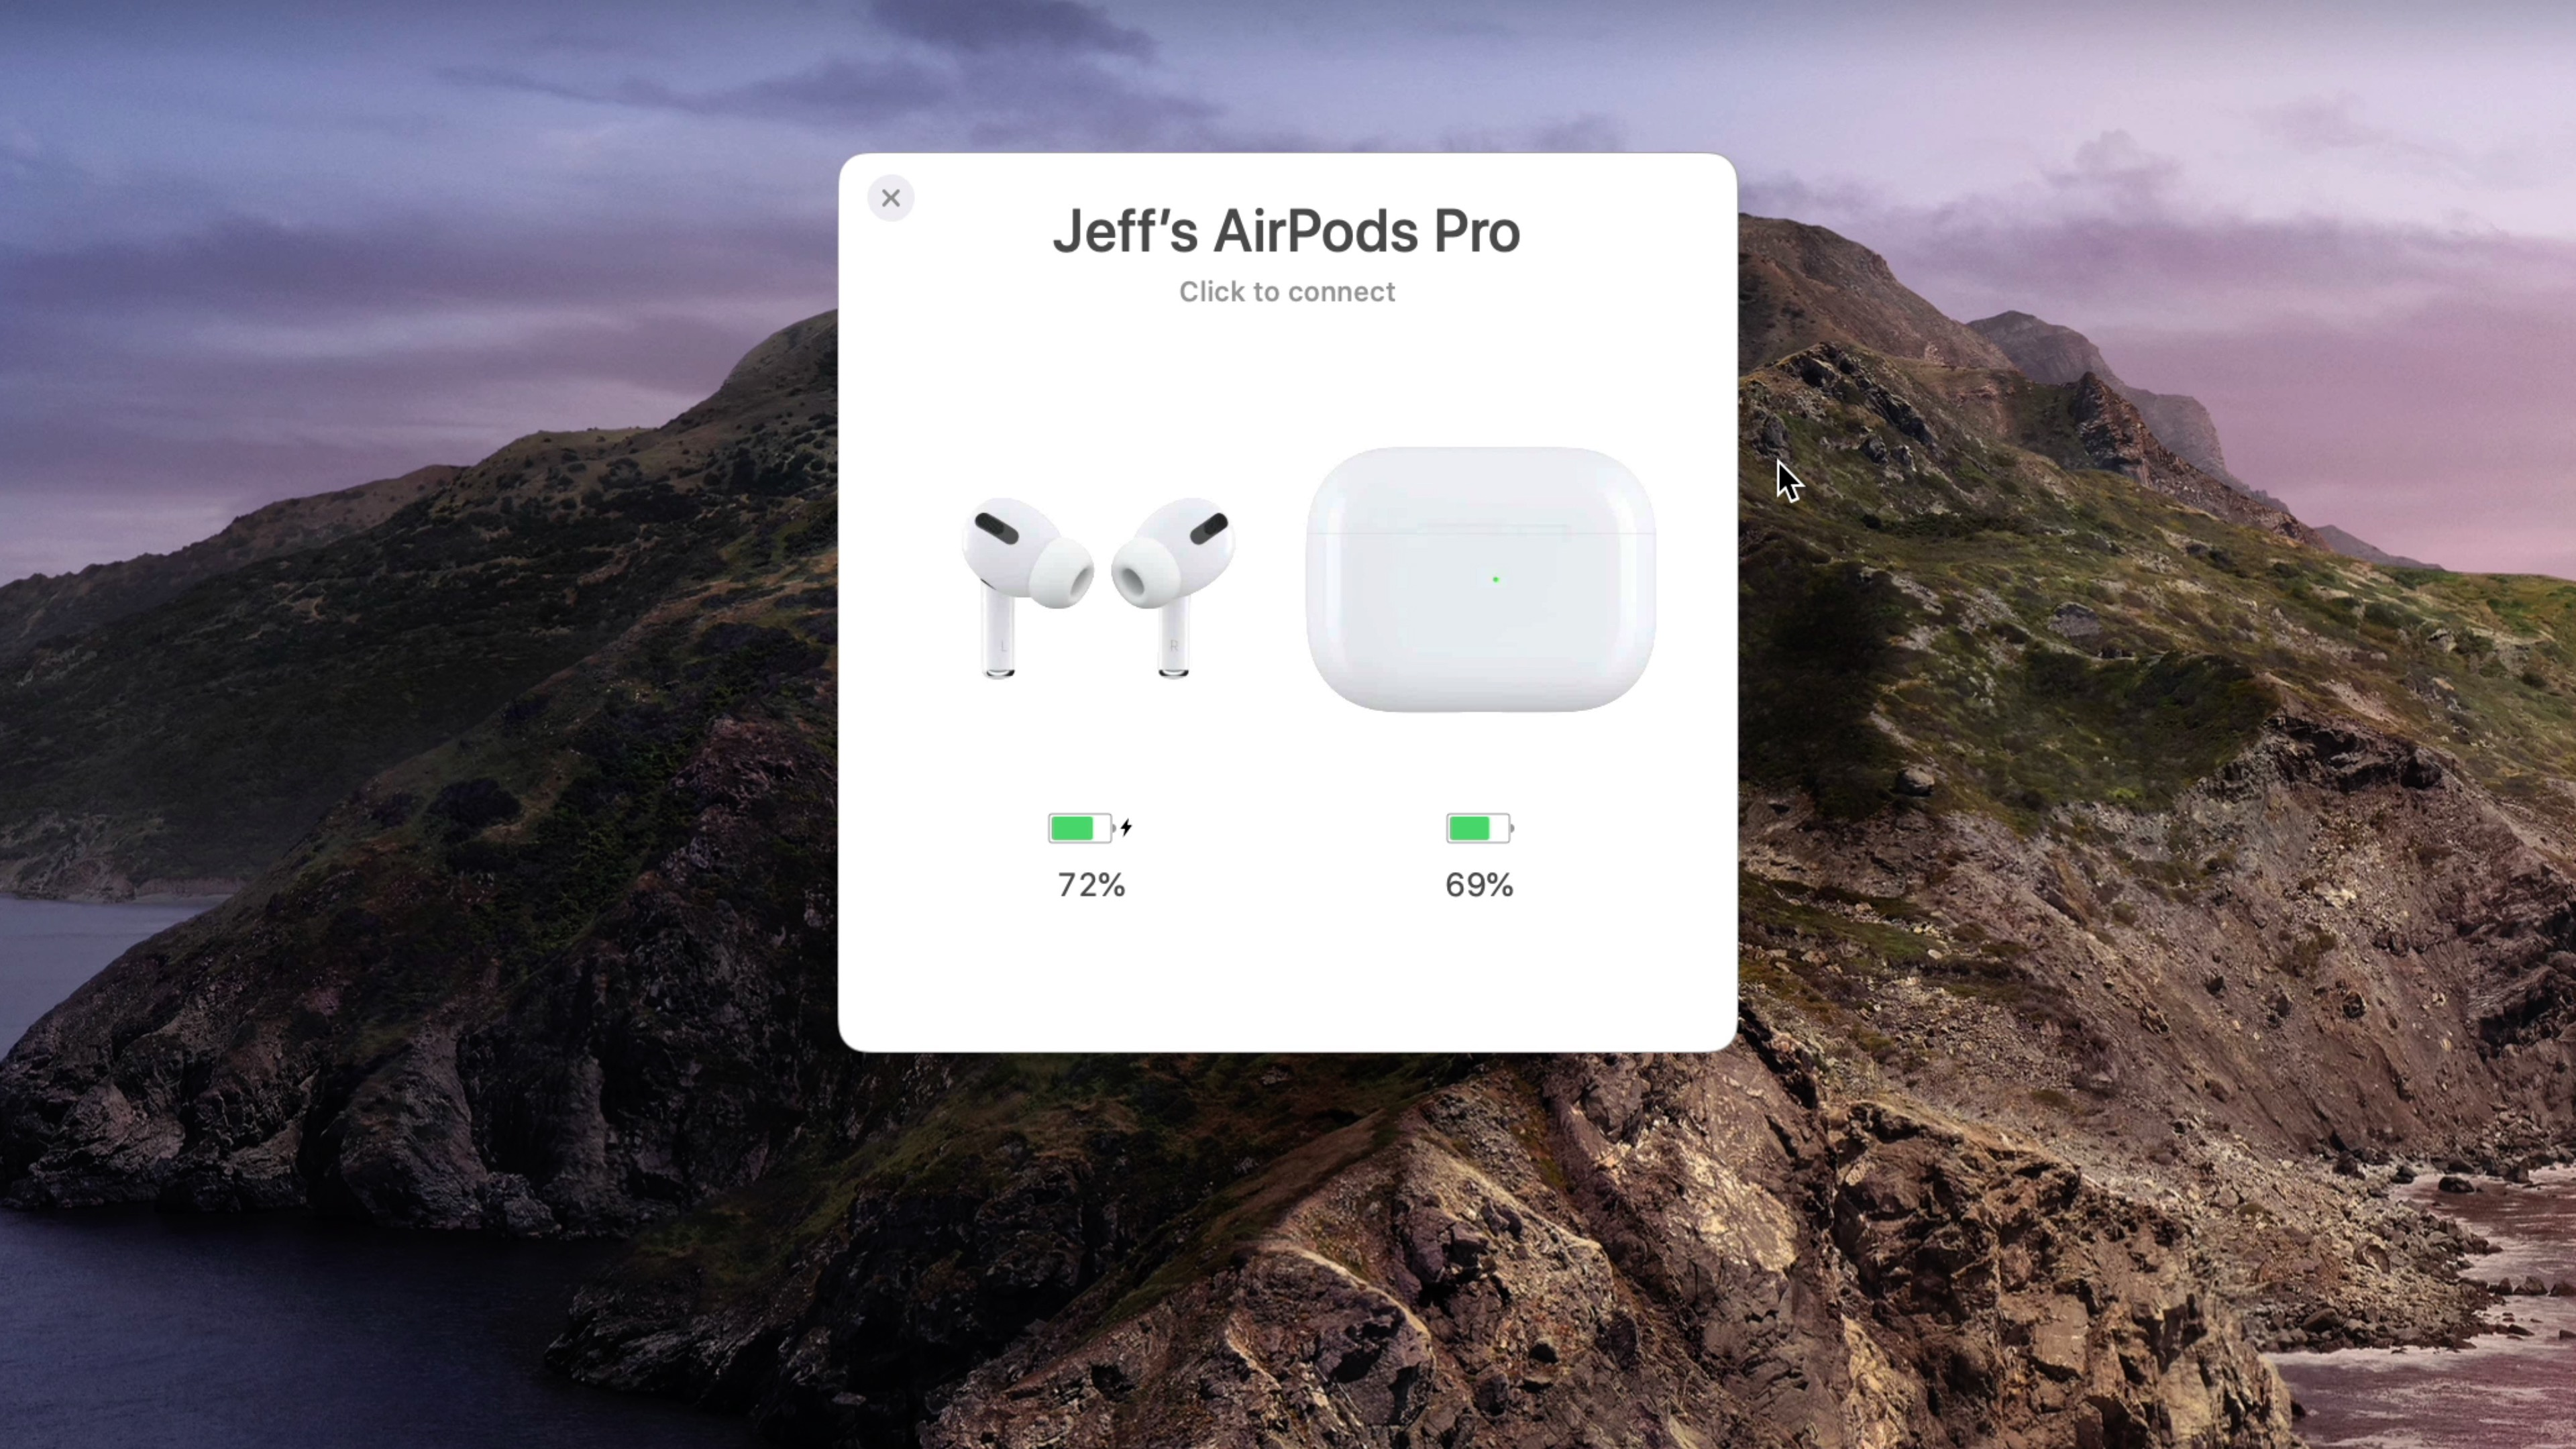 AirBuddy AIrPods Pro